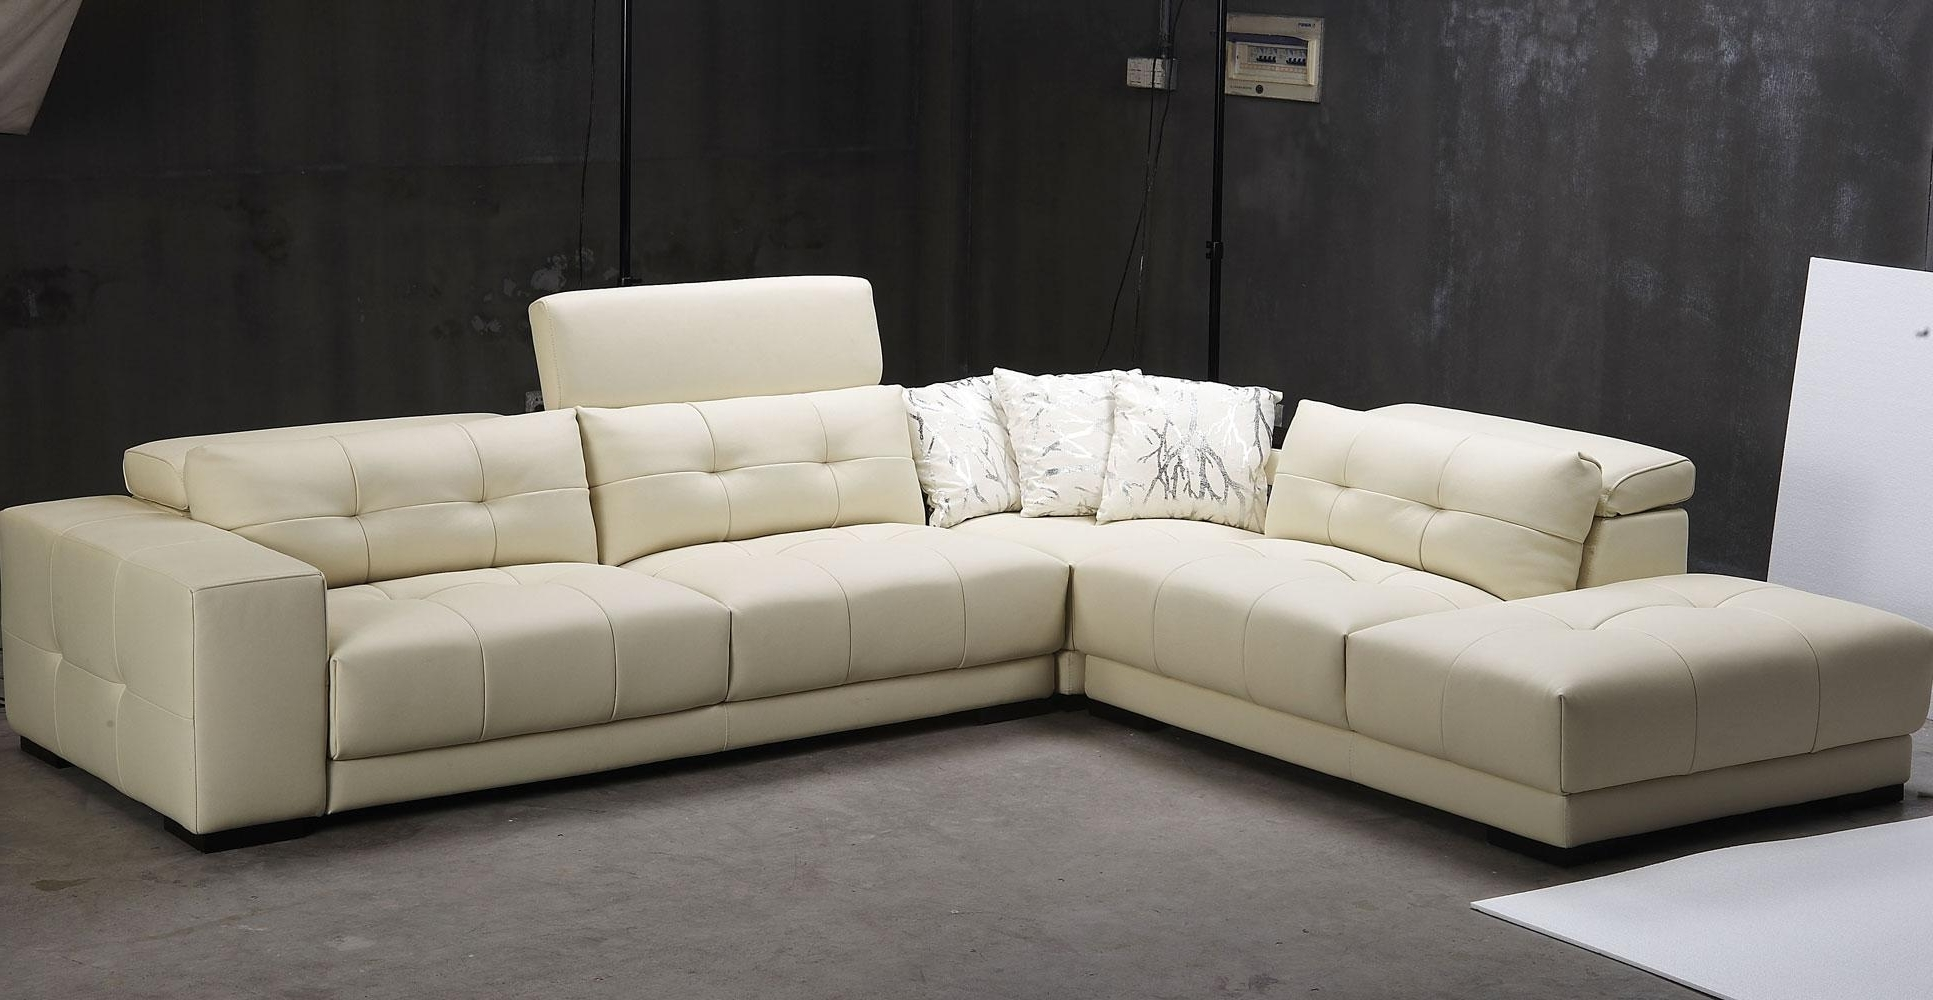 Leather Sectional Sleeper Sofas With Chaise Within Popular Best Modern 3 Piece White Leather Sectional Sleeper Sofa With (View 7 of 15)